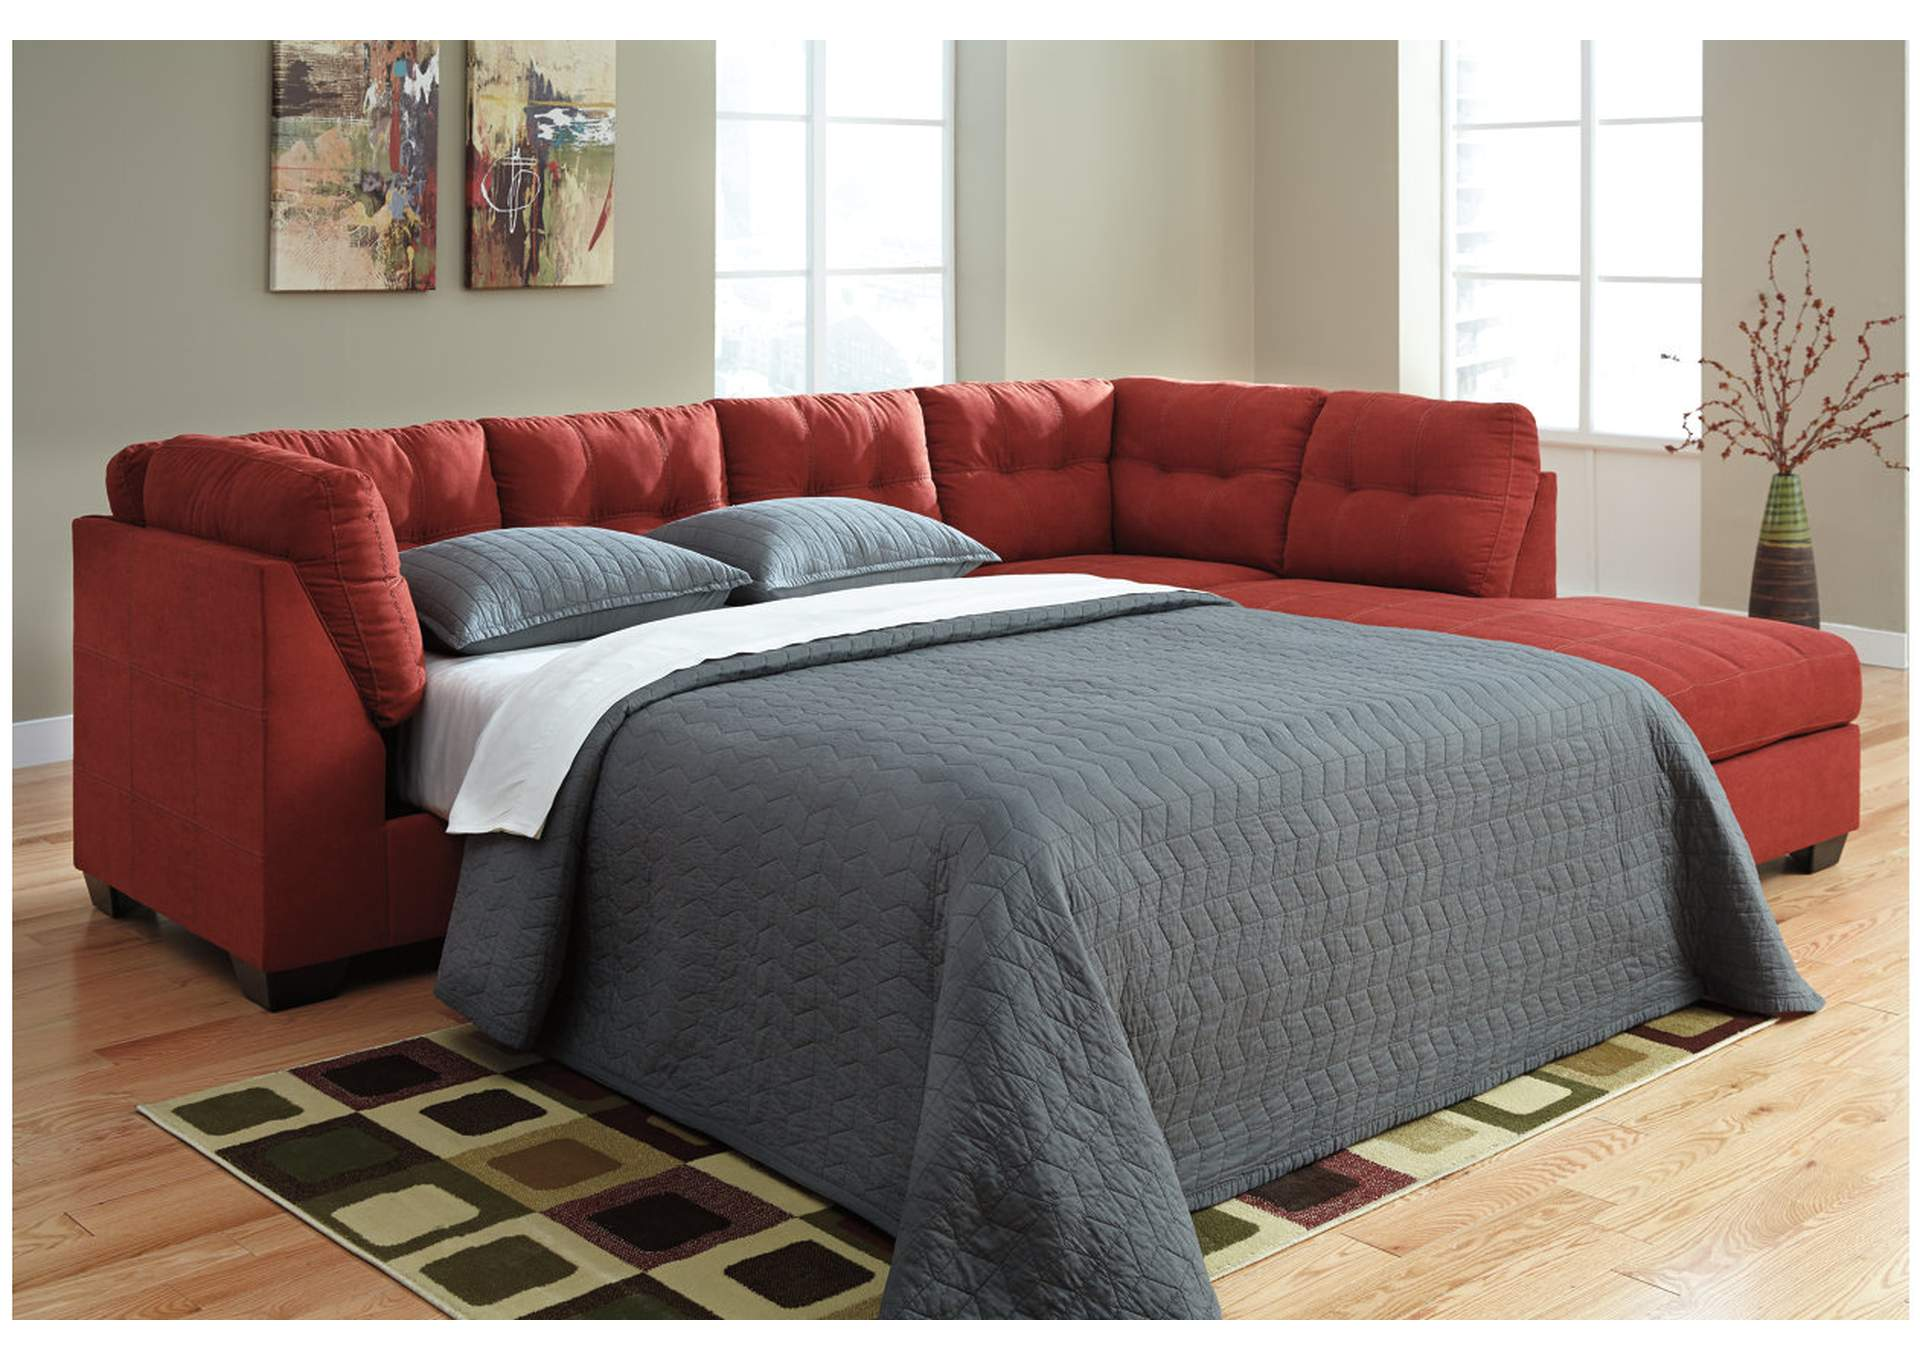 Vip Furniture Outlet Upper Darby Pa Maier Sienna Right Arm Facing Chaise End Sleeper Sectional